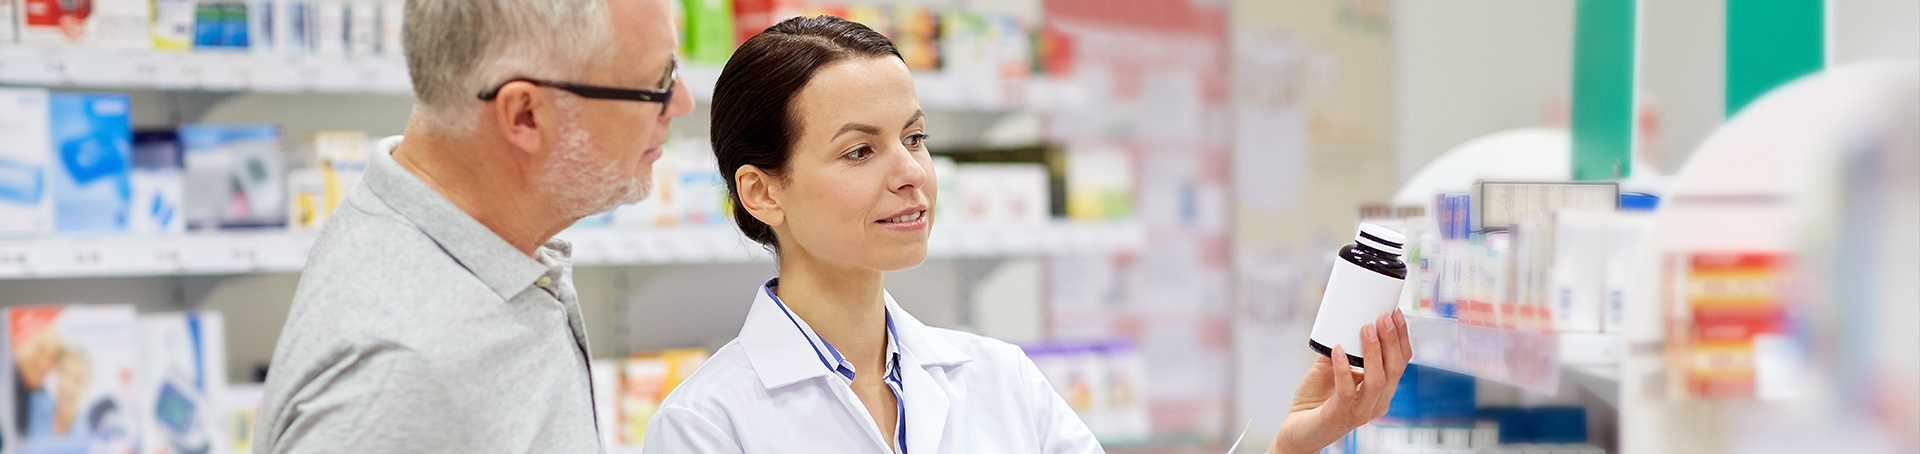 Count on Wiley's pharmacy for all of your prescription needs